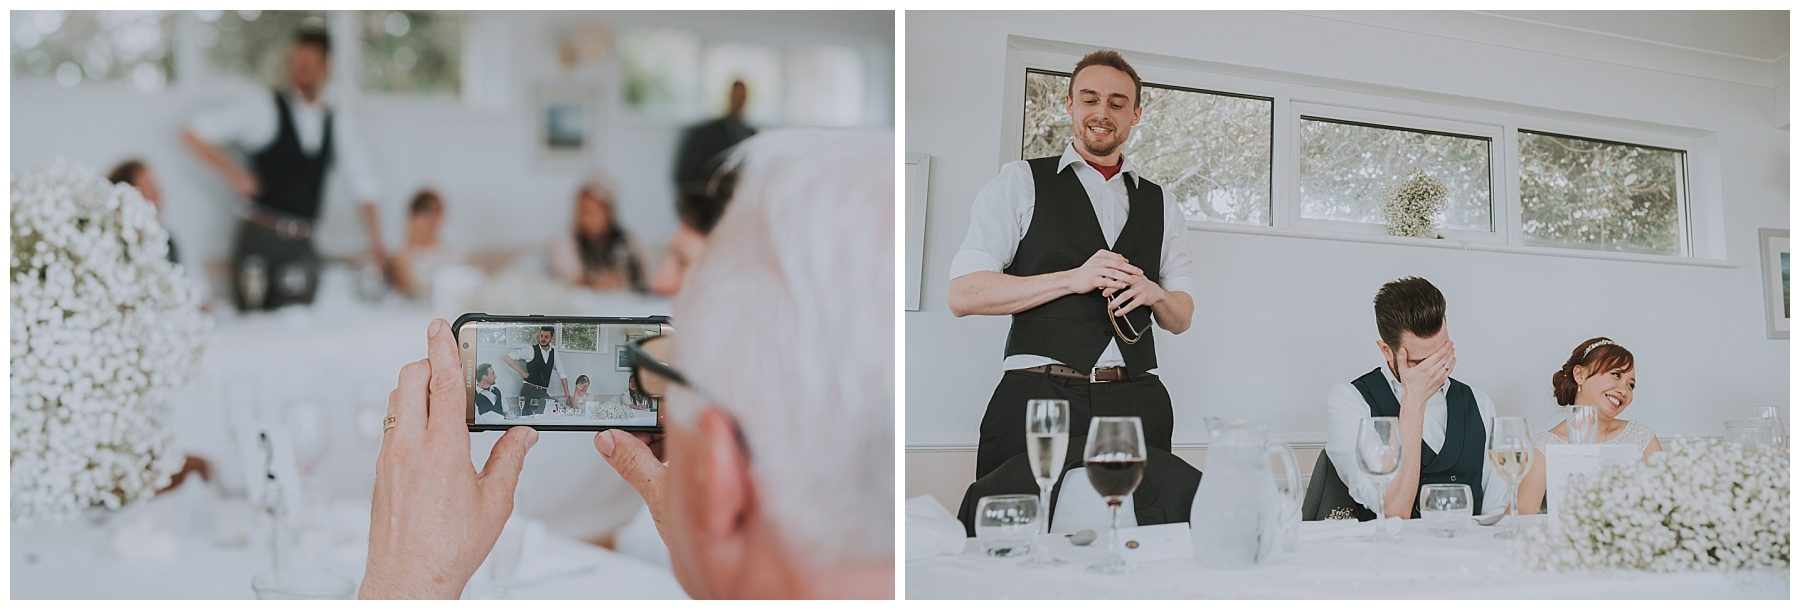 Best man speech wedding falmouth cornwall photographer